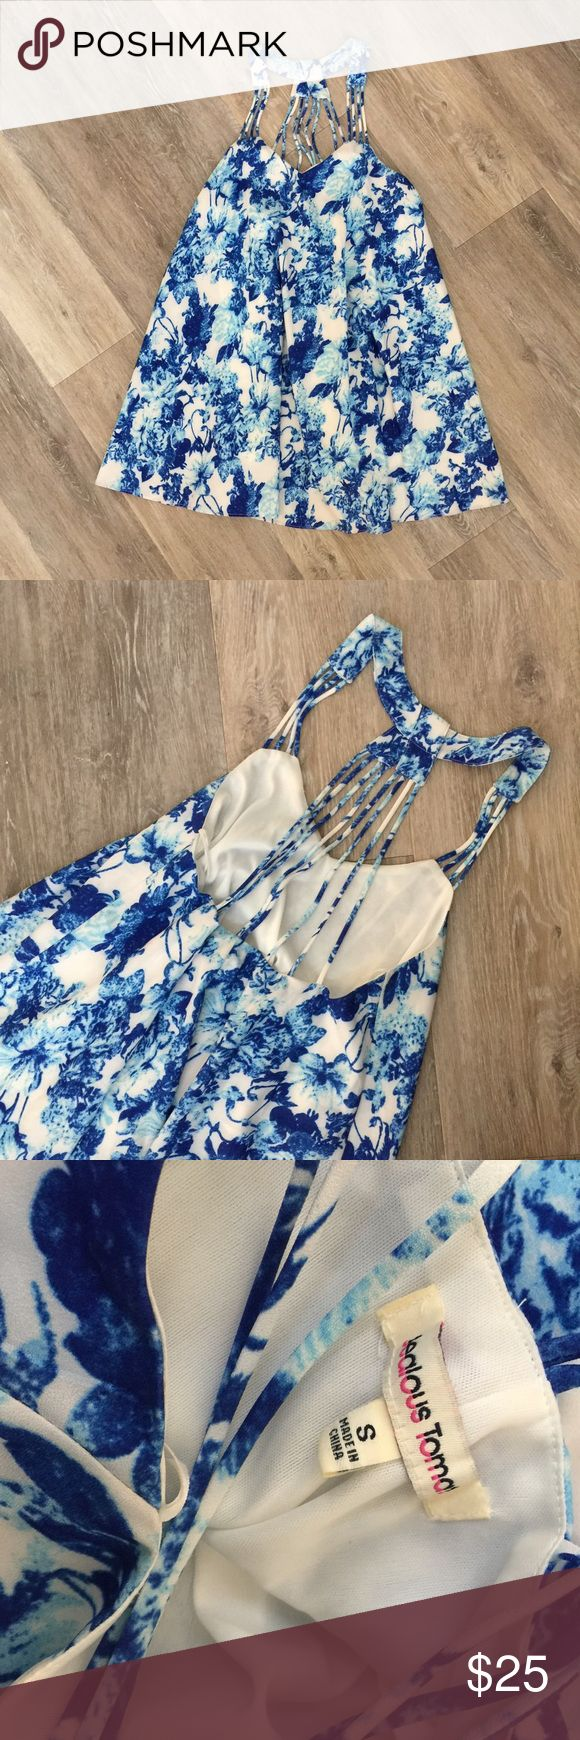 Blue + White Strappy Dress Like New blue and white dress with strapping detailing on the back. Very flowy. Would be perfect for a beach vacay :) size small. No trades. Poshmark transactions only :) Dresses